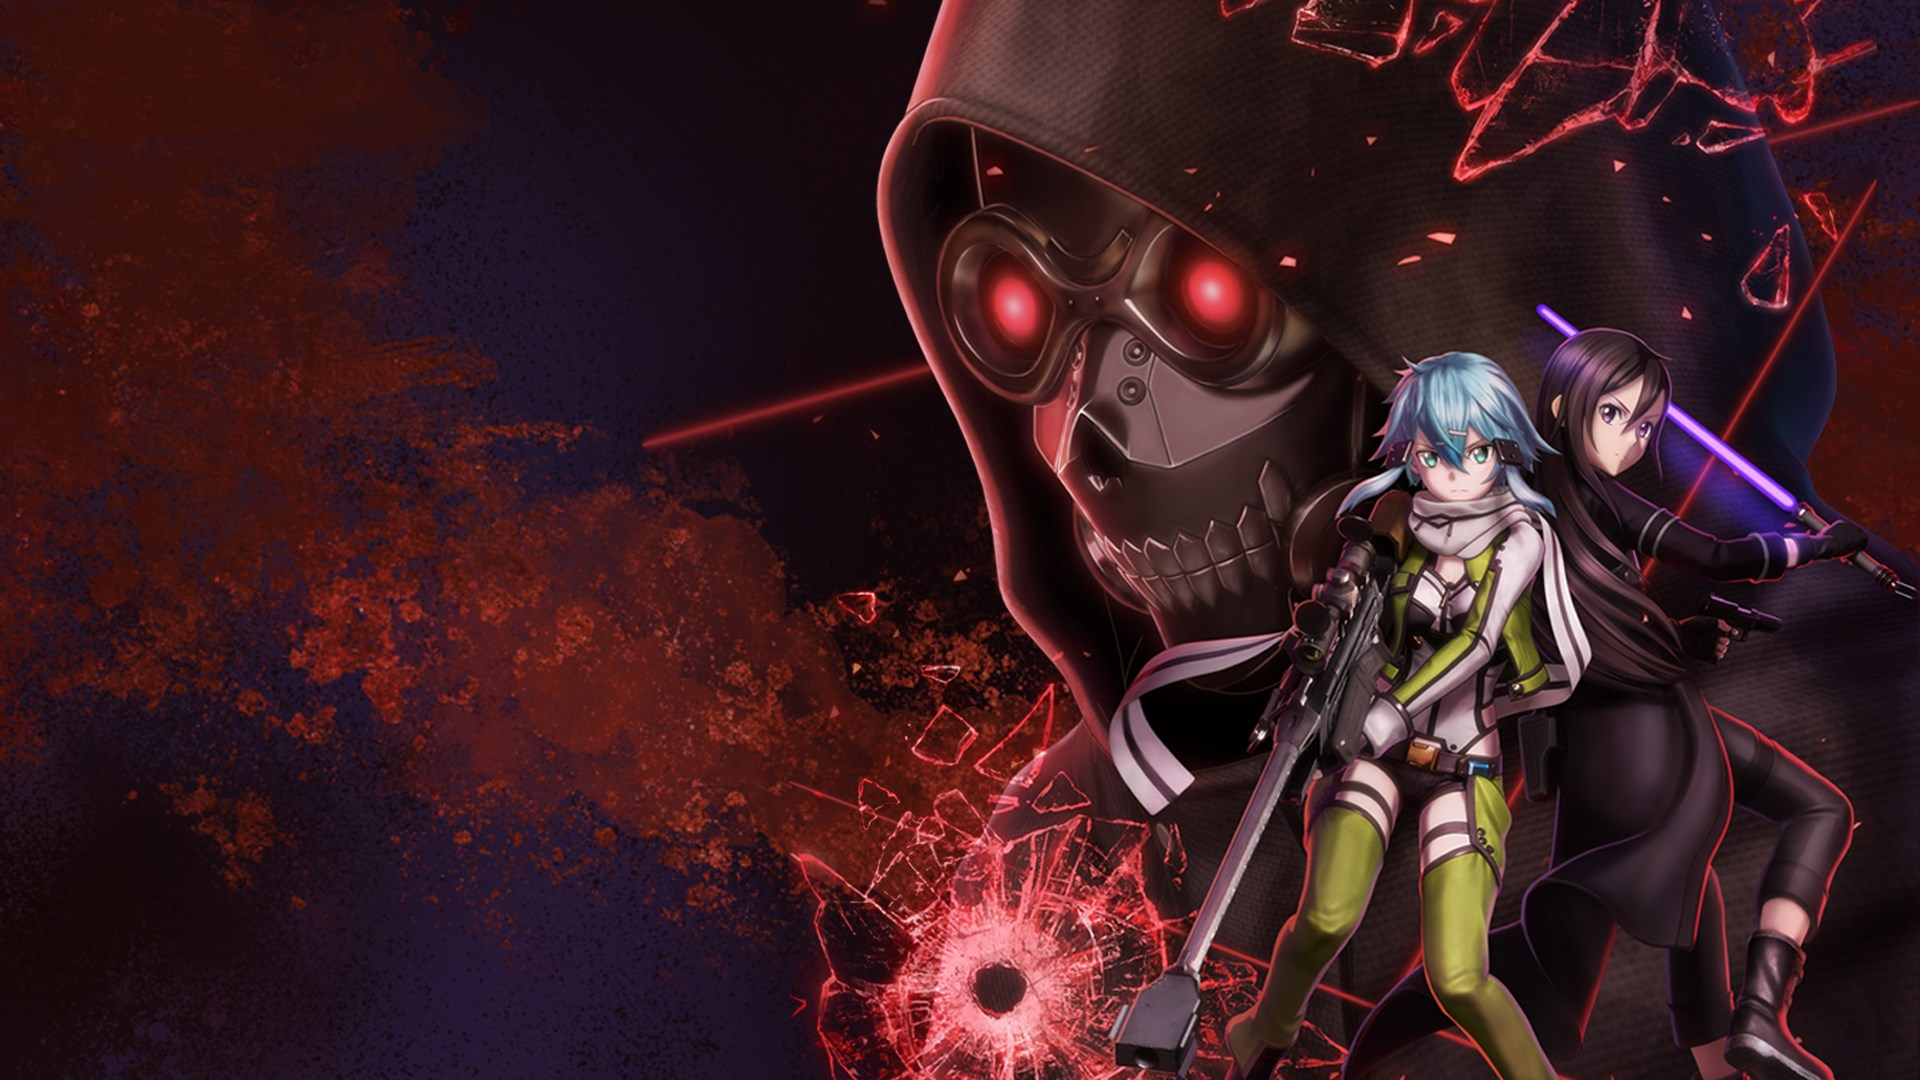 How To Draw A Perfect Circle 2009 Online buy sword art online: fatal bullet - microsoft store